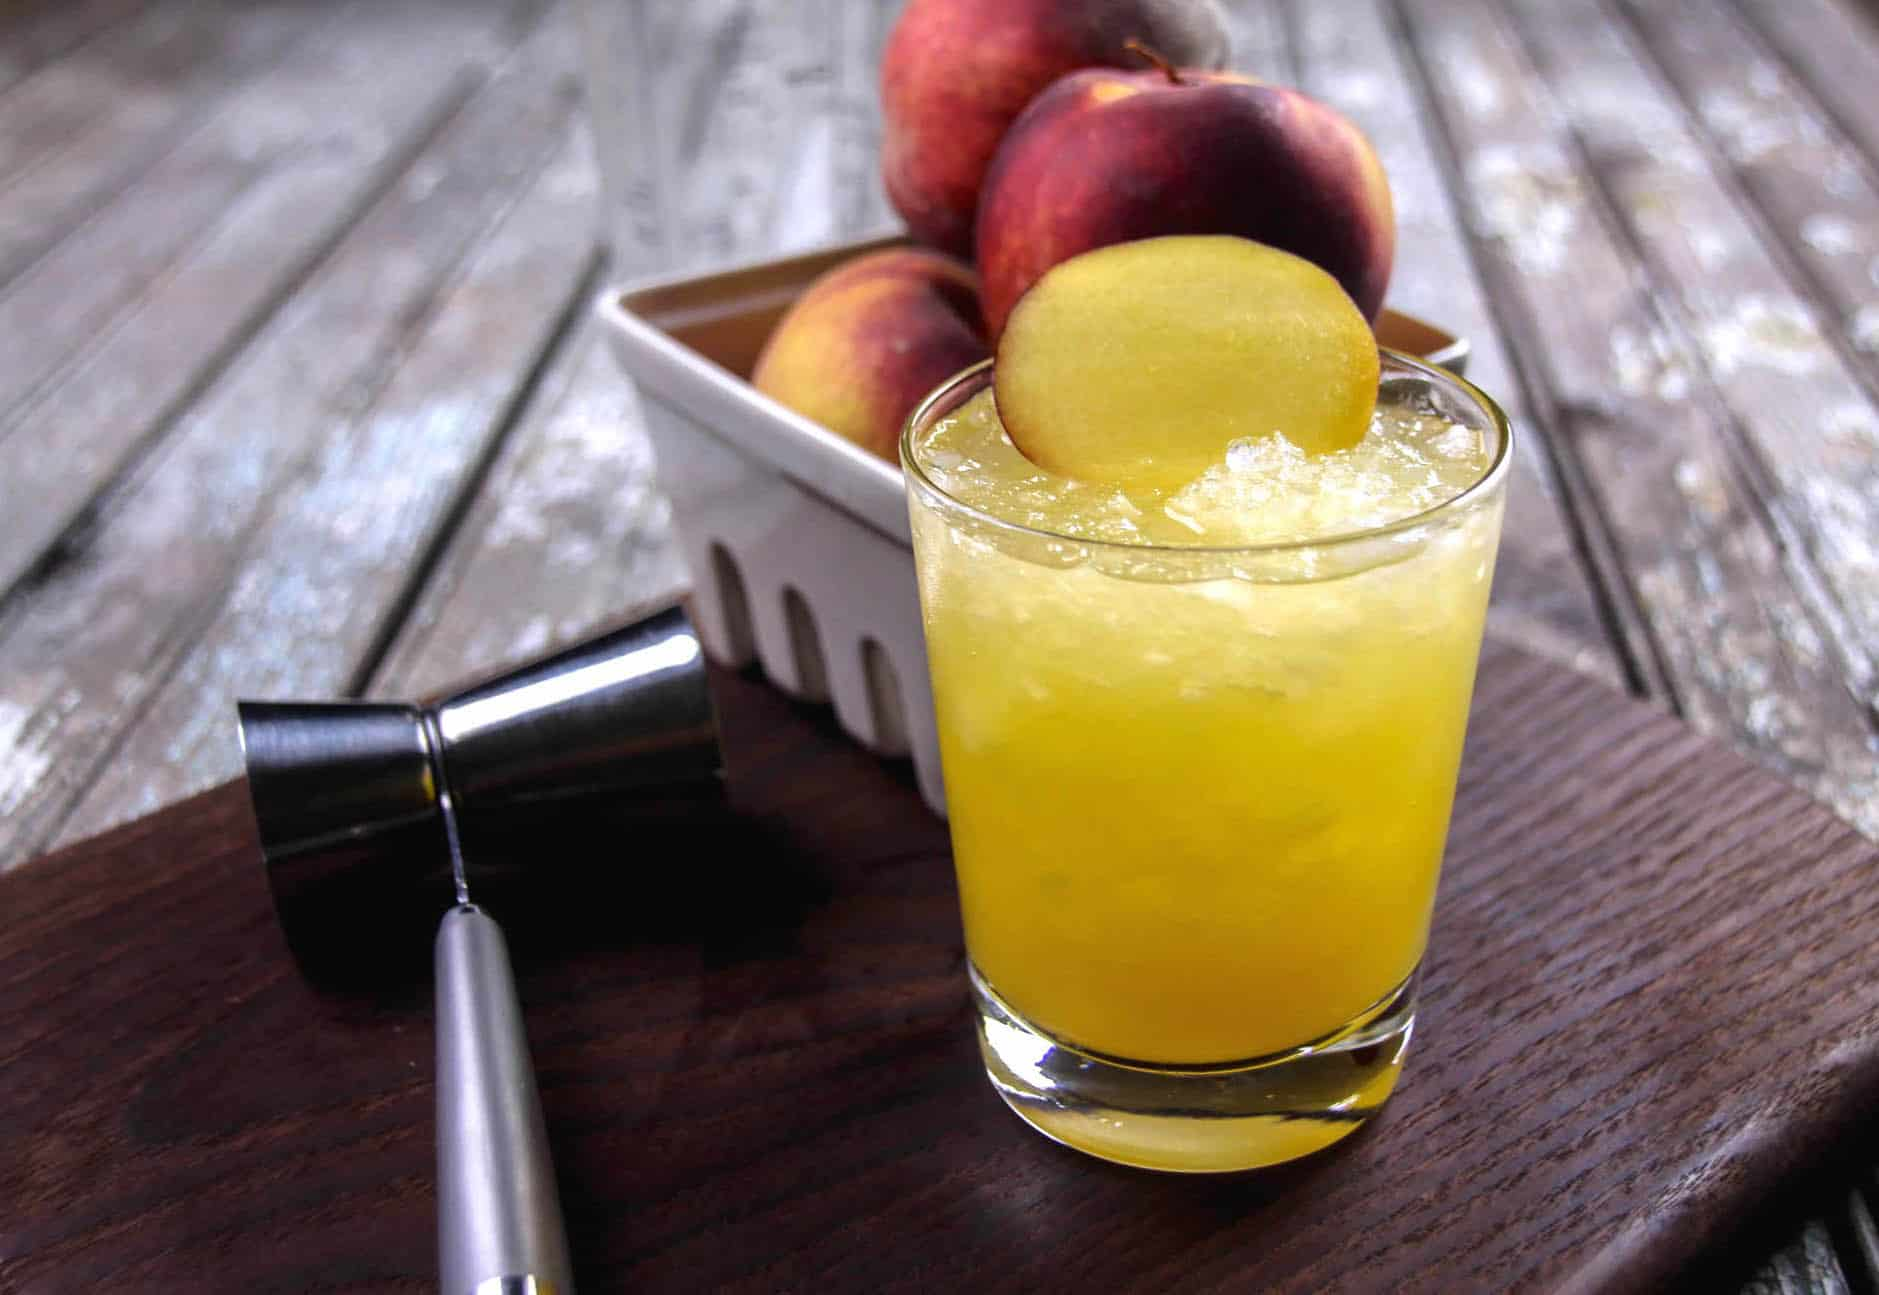 Take the classic screwdriver recipe and make it peachy and delicious for summer! You're going to love the fruit flavored vodka and yummy nectar within.